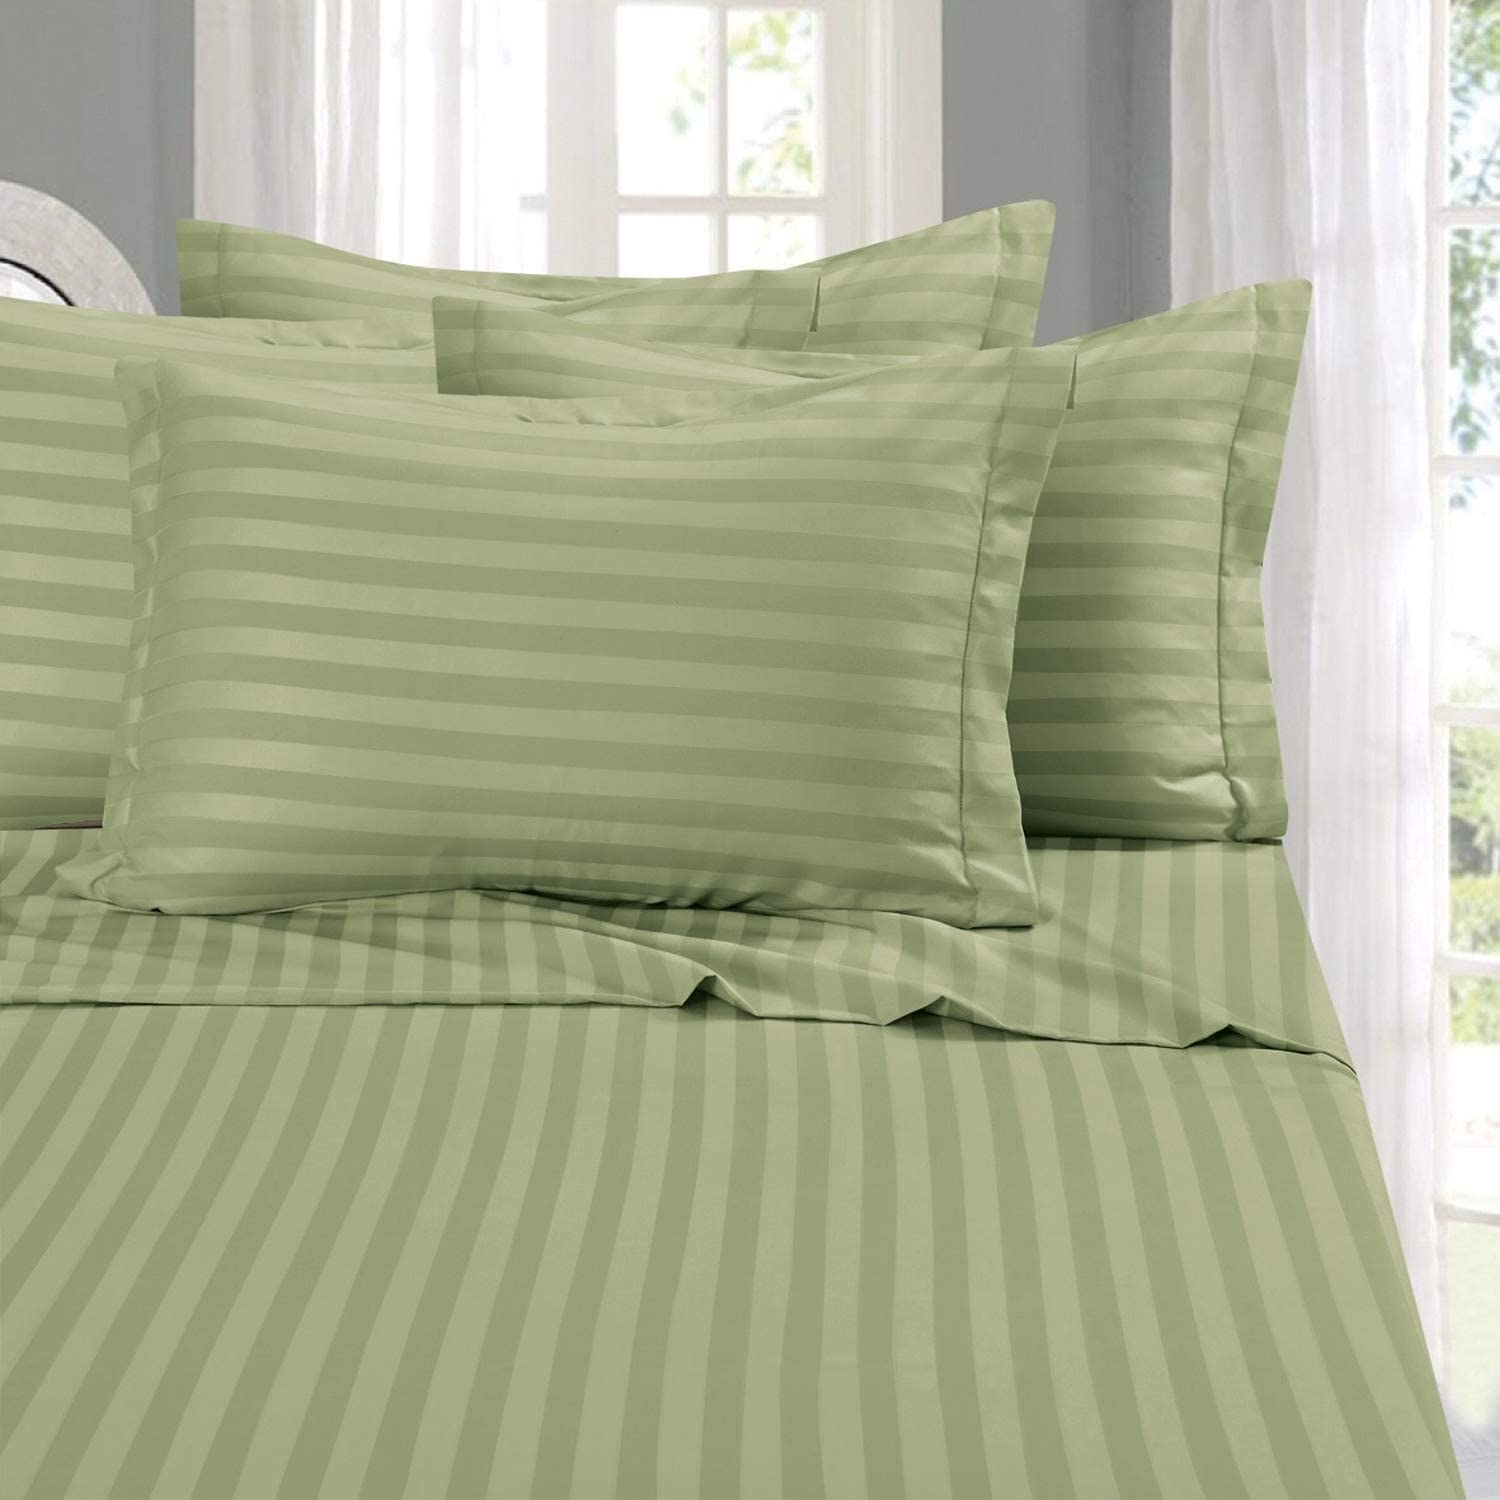 L'American service Bedding Heavy Fabric Max 43% OFF Egyptian Cotto 1000-Thread Count